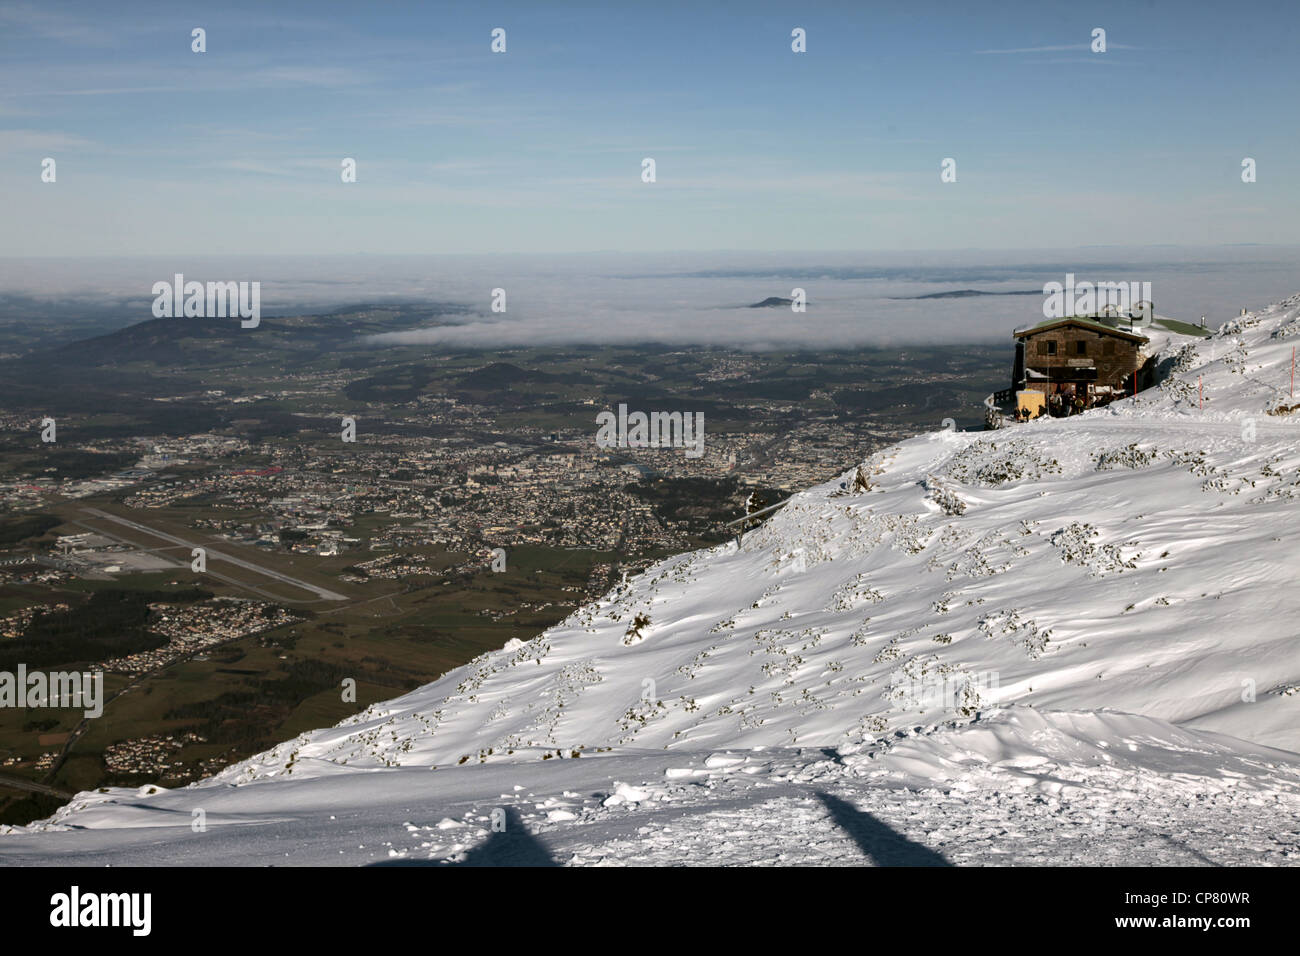 LOG CABIN SALZBURG AIRPORT & CITY FROM UNTERSBERG MOUNTAIN AUSTRIA 28 December 2011 Stock Photo